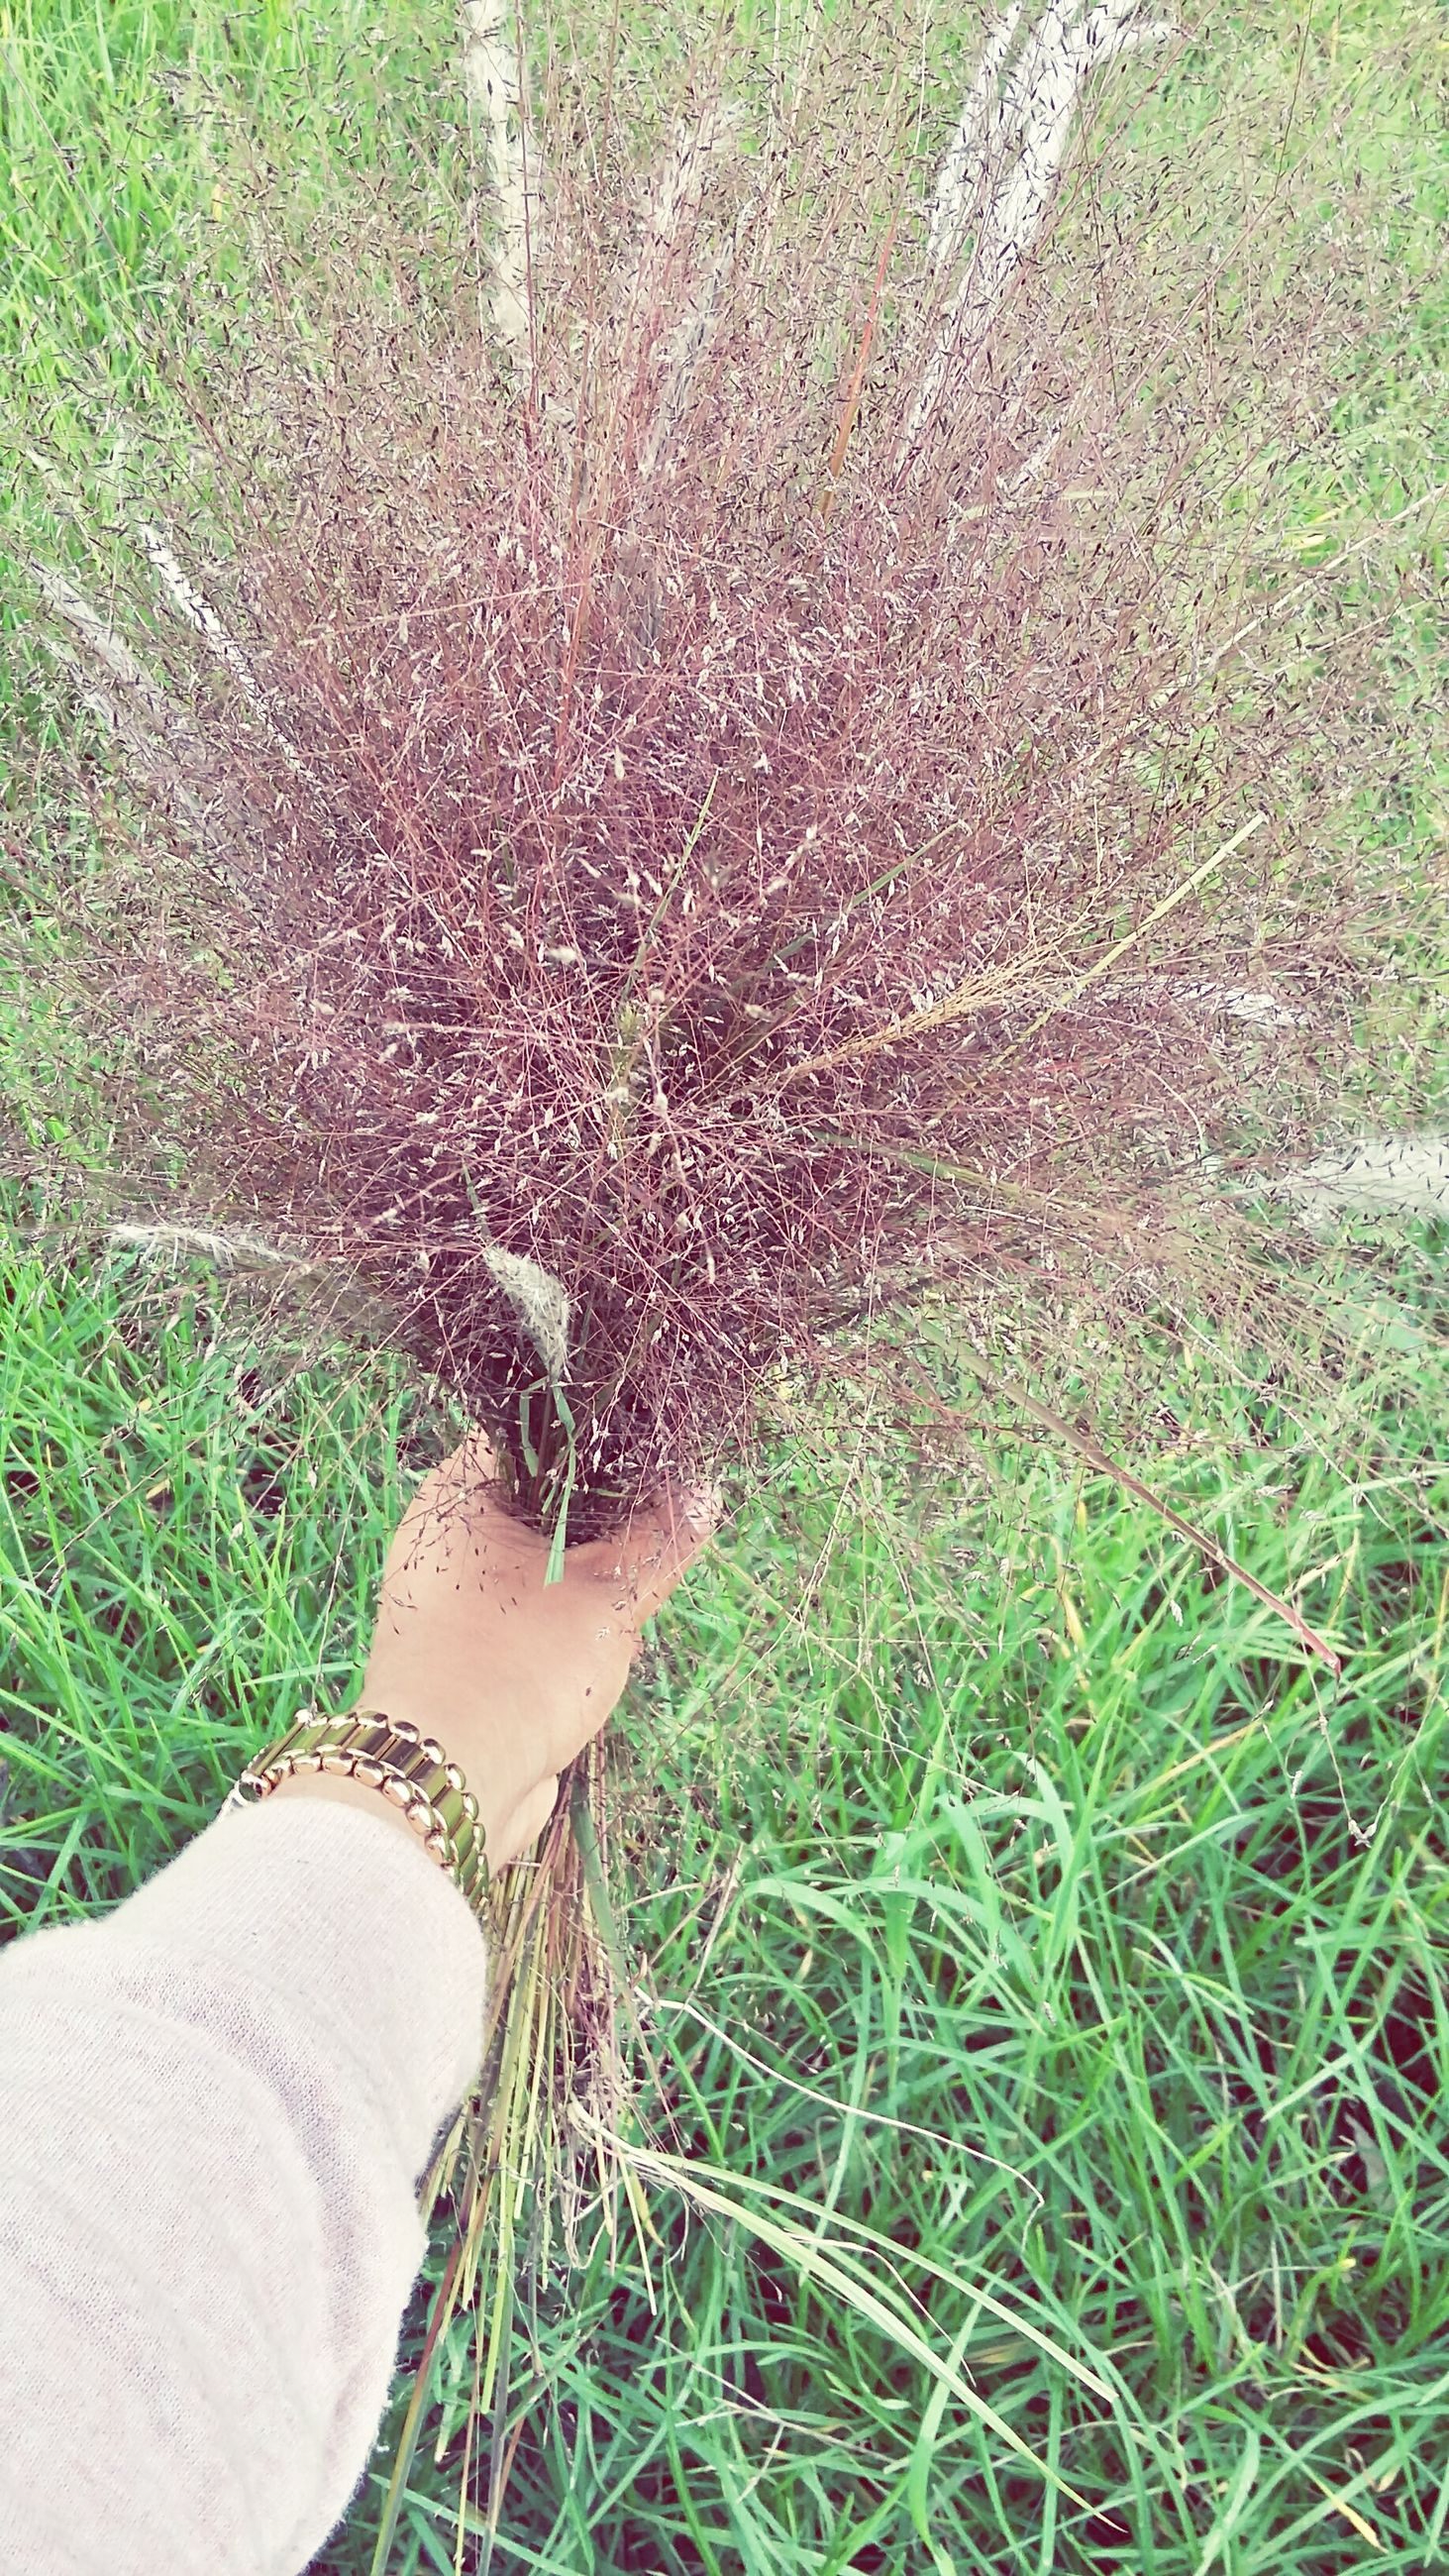 grass, low section, lifestyles, leisure activity, field, personal perspective, green color, part of, unrecognizable person, grassy, outdoors, day, nature, plant, growth, close-up, elevated view, tranquility